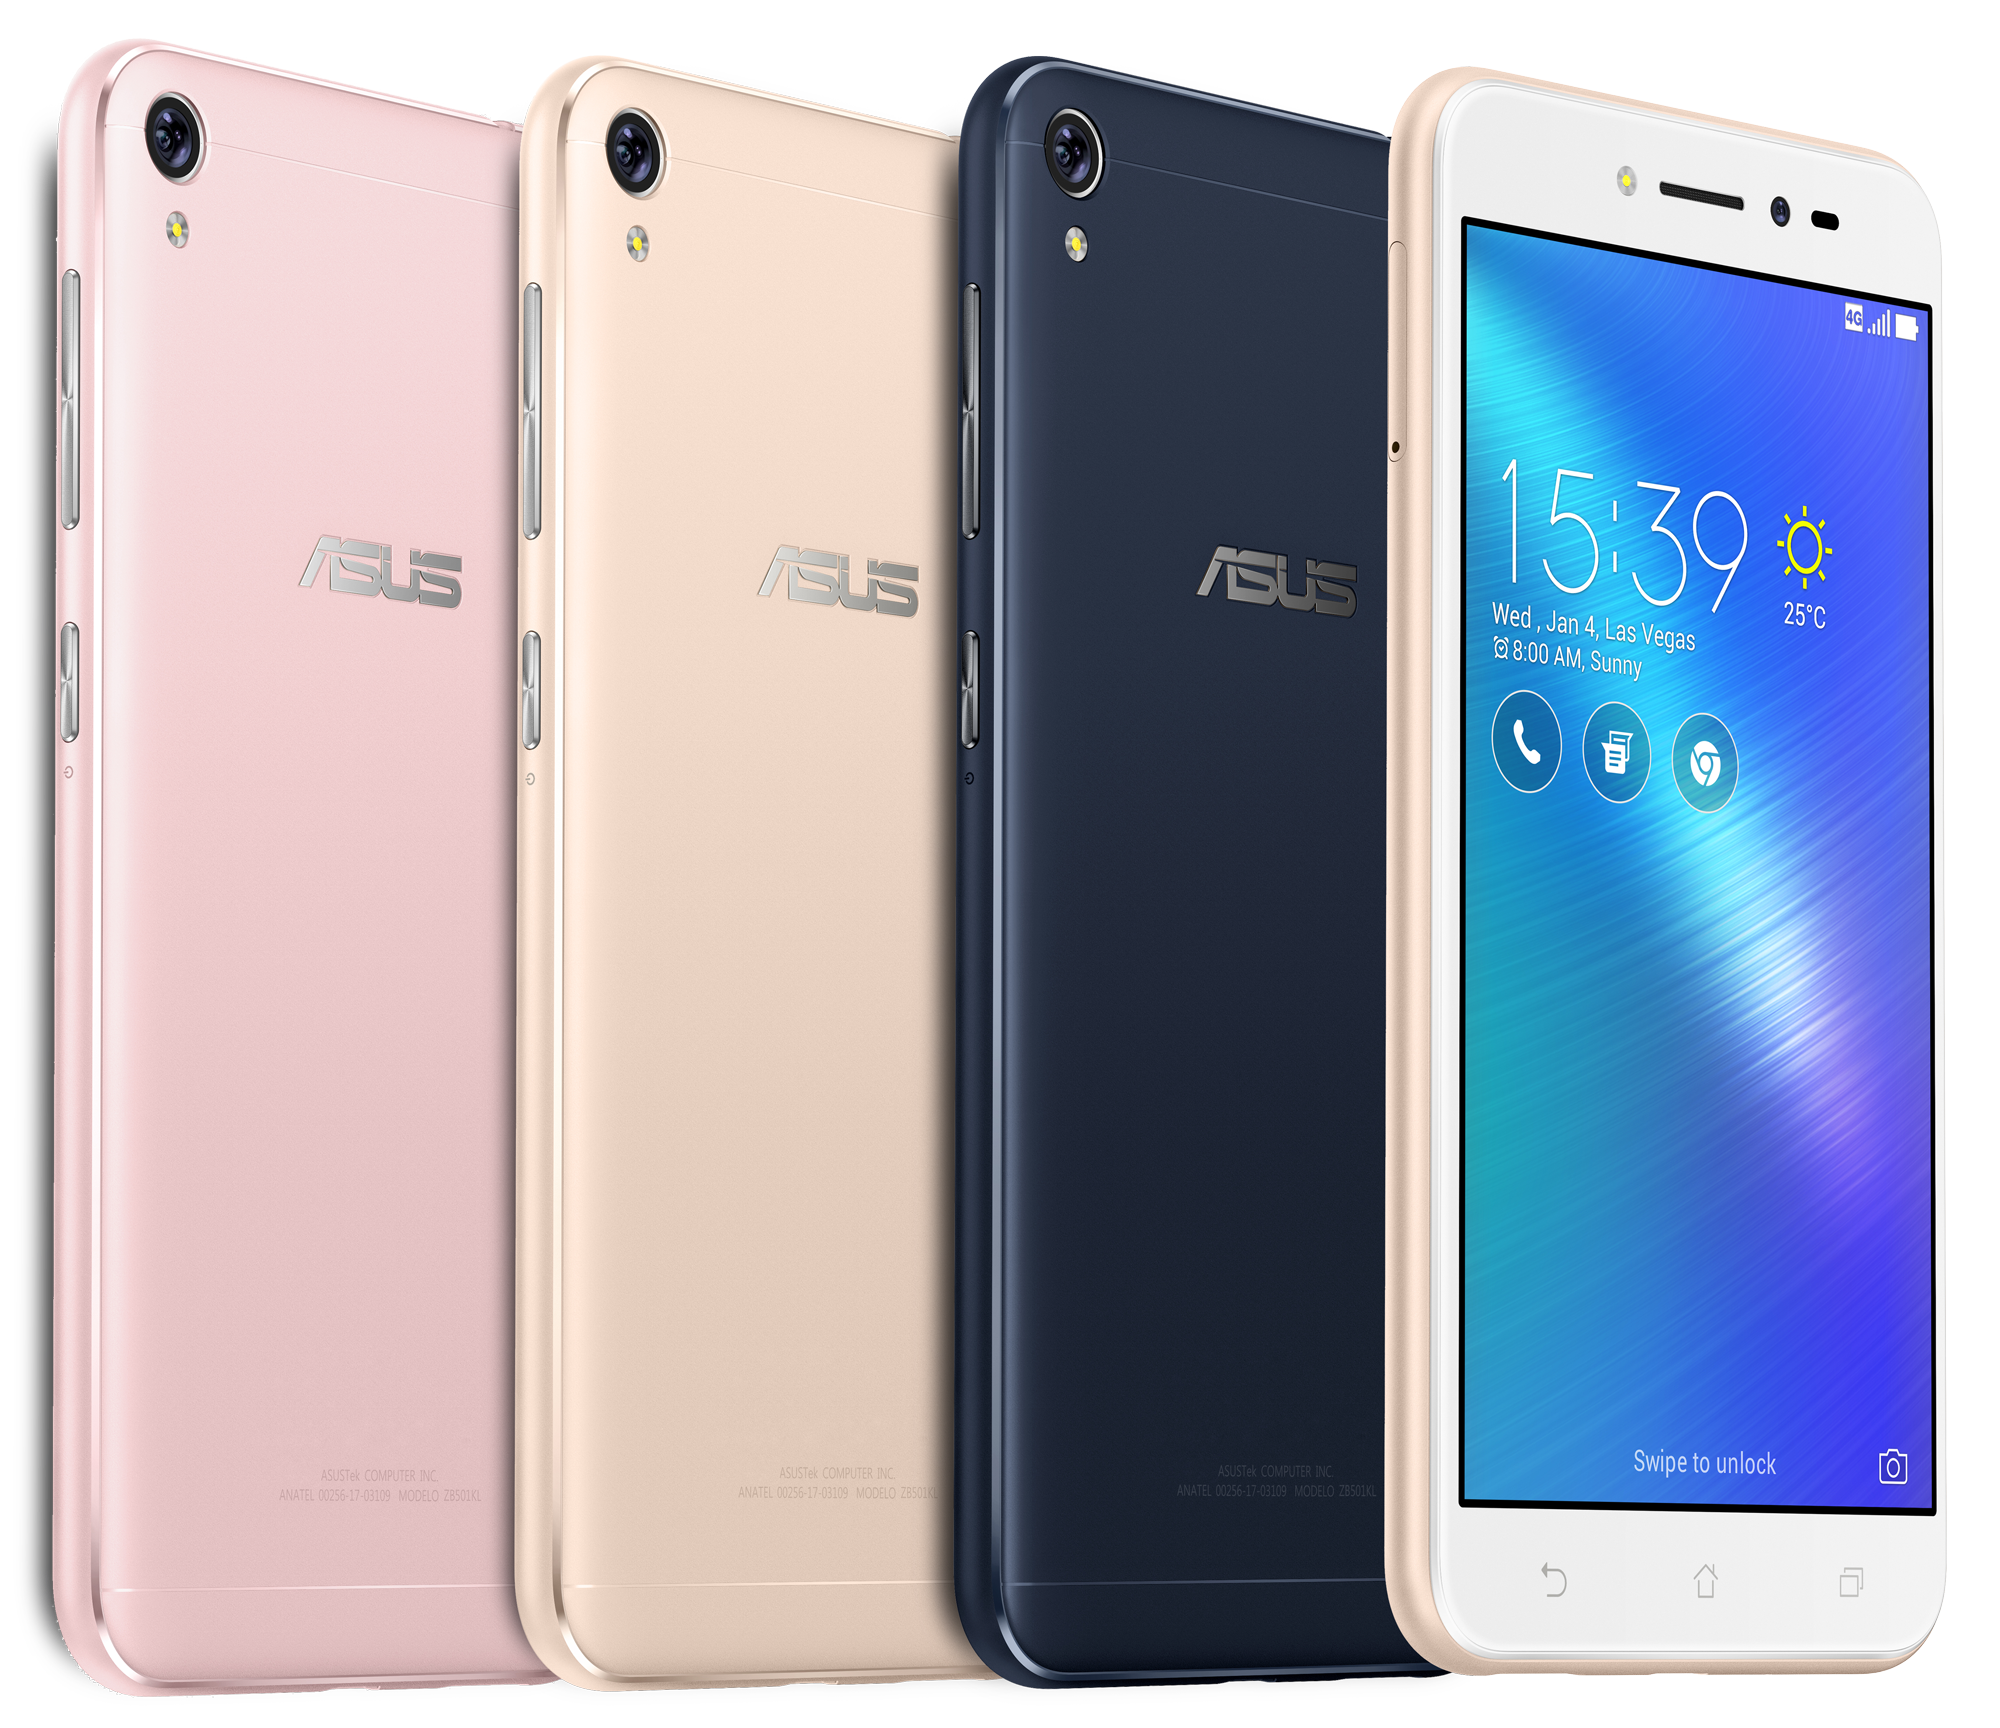 asus zenfone live is now official at rs 9999 photo gallery our thoughts. Black Bedroom Furniture Sets. Home Design Ideas